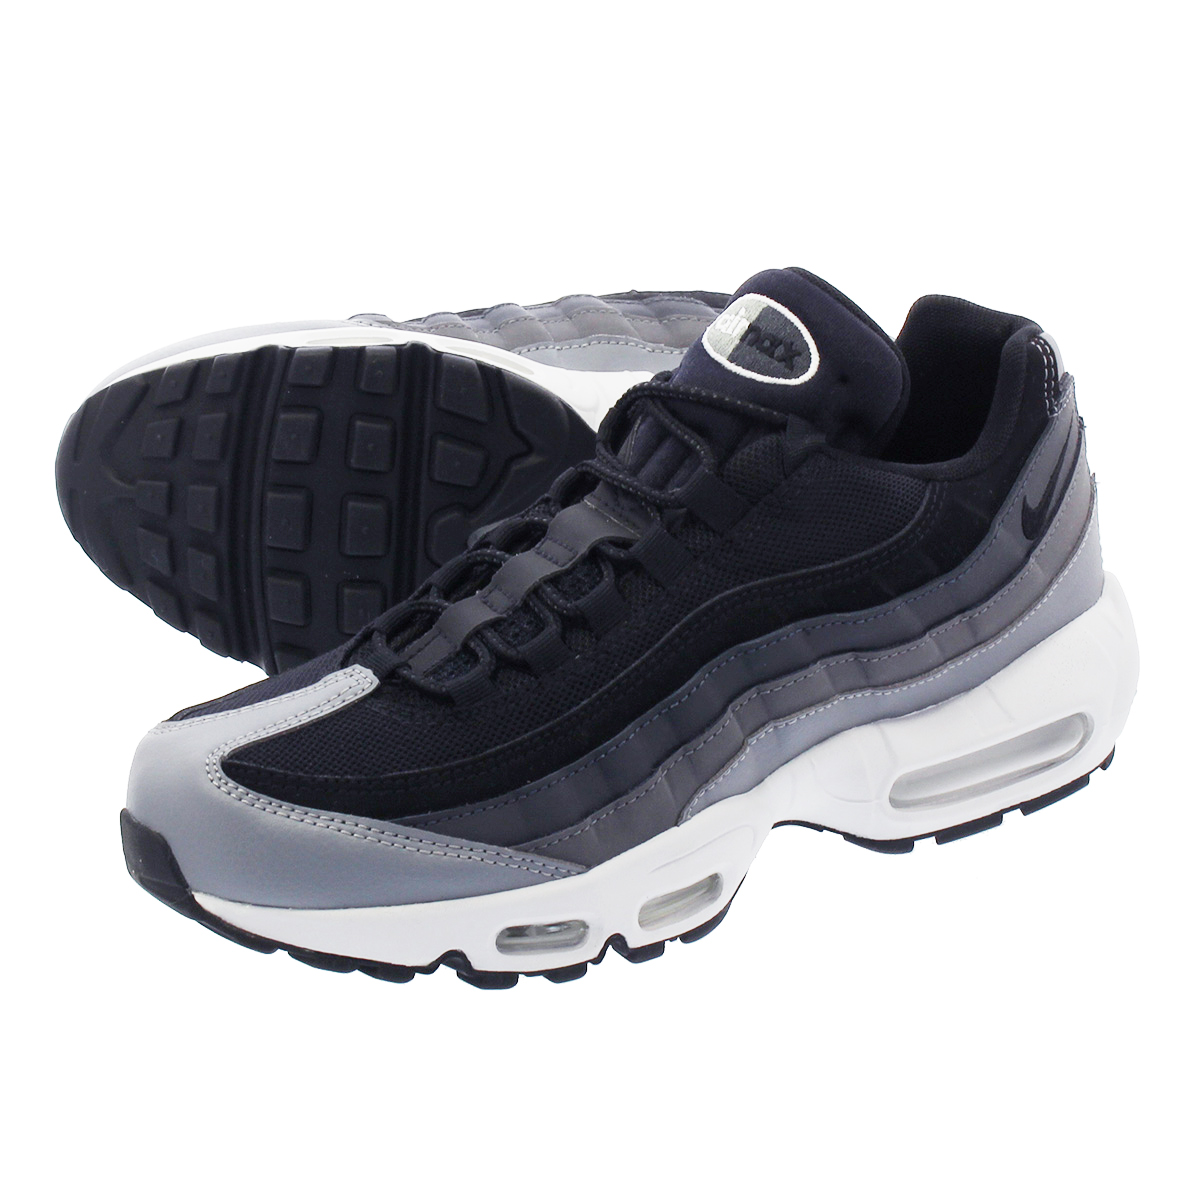 NIKE AIR MAX 95 ESSENTIAL Kie Ney AMAX 95 essential BLACKANTHRACITEDARK GREY